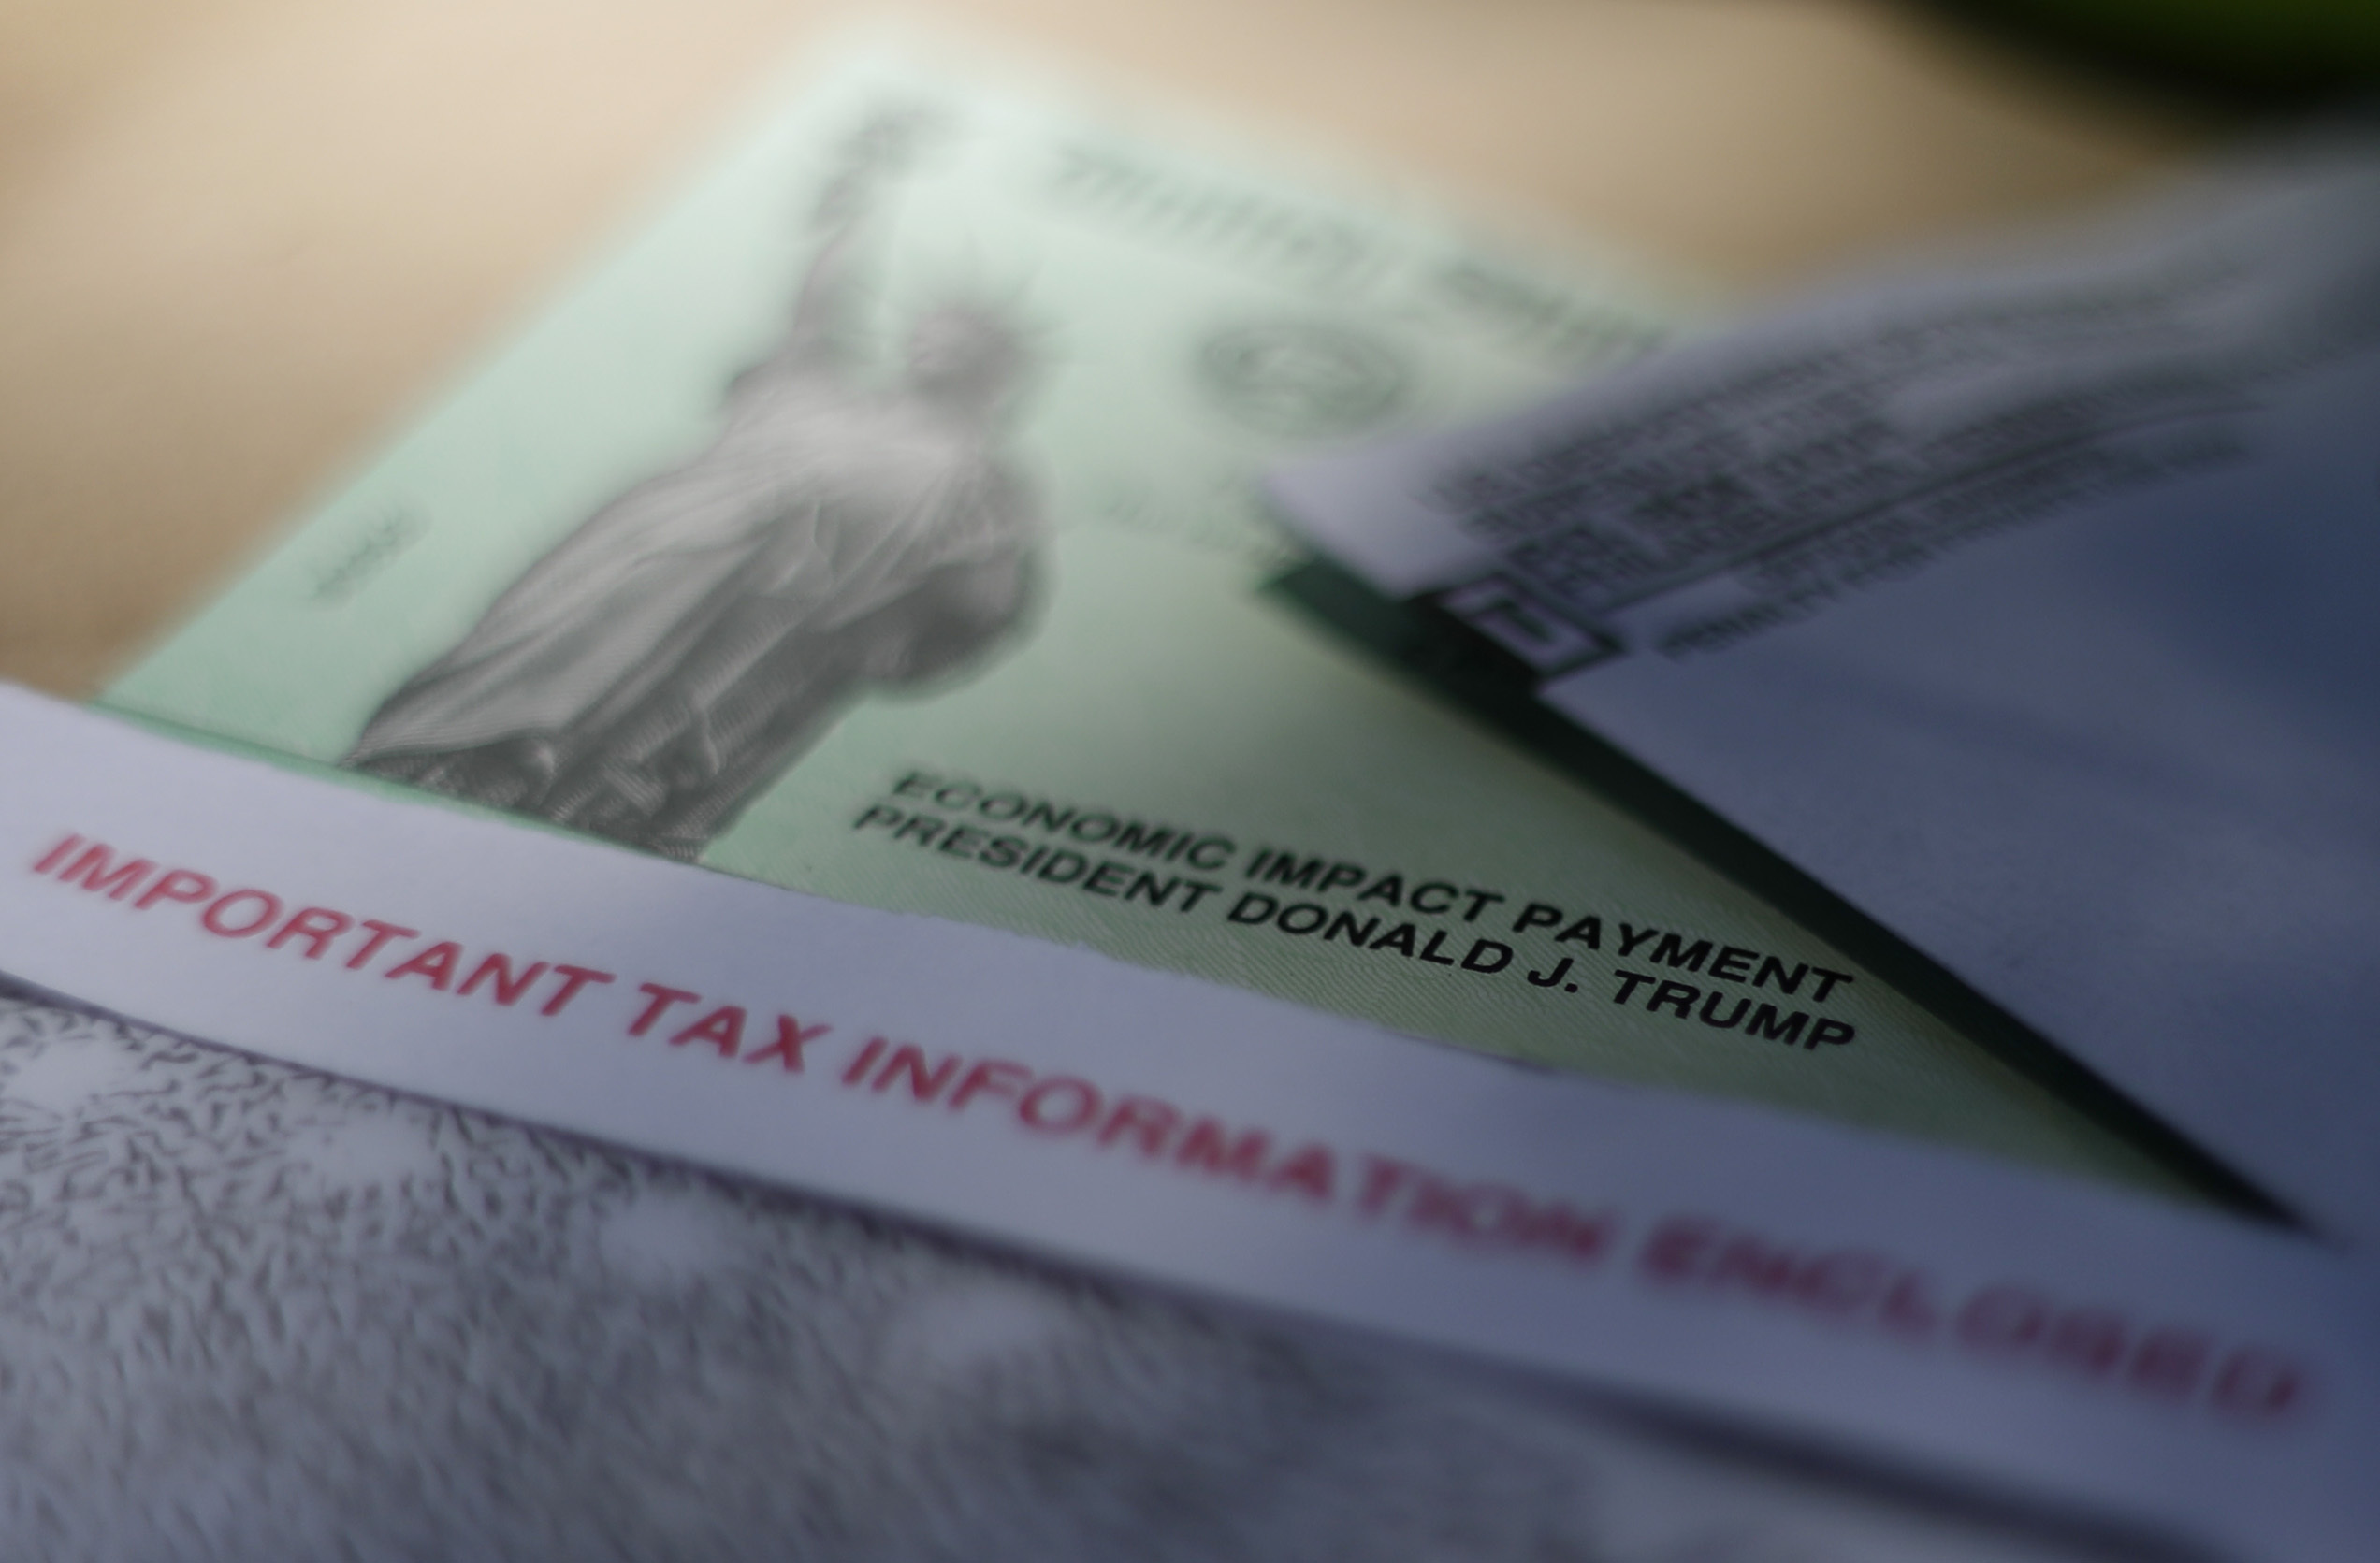 wfla.com - Heather Monahan - Second stimulus check: Group of economists suggests ongoing payments